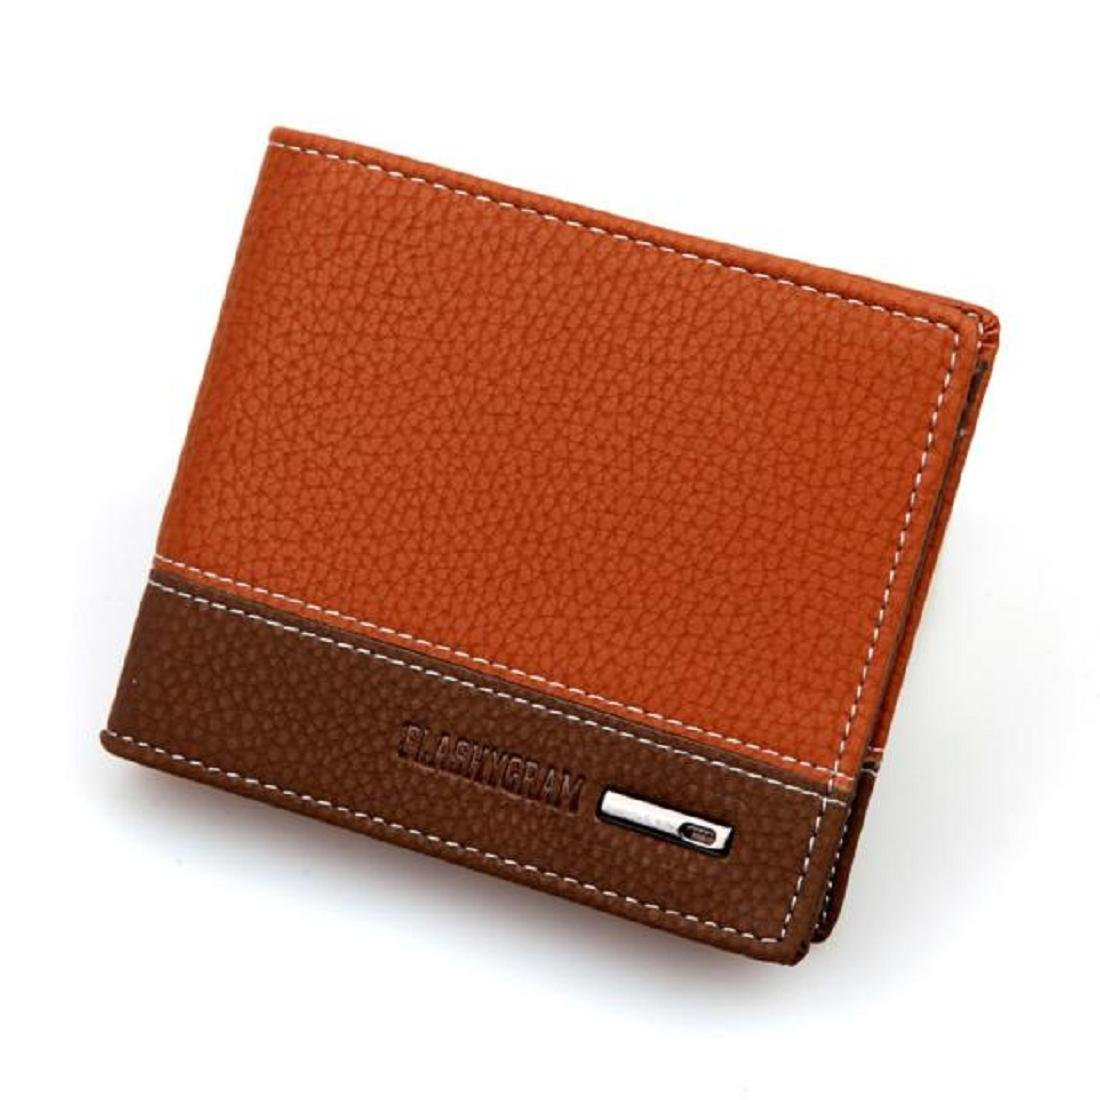 Coromose Mens Leather Bifold Money Card Holder Wallet Coin Purse Clutch Pockets